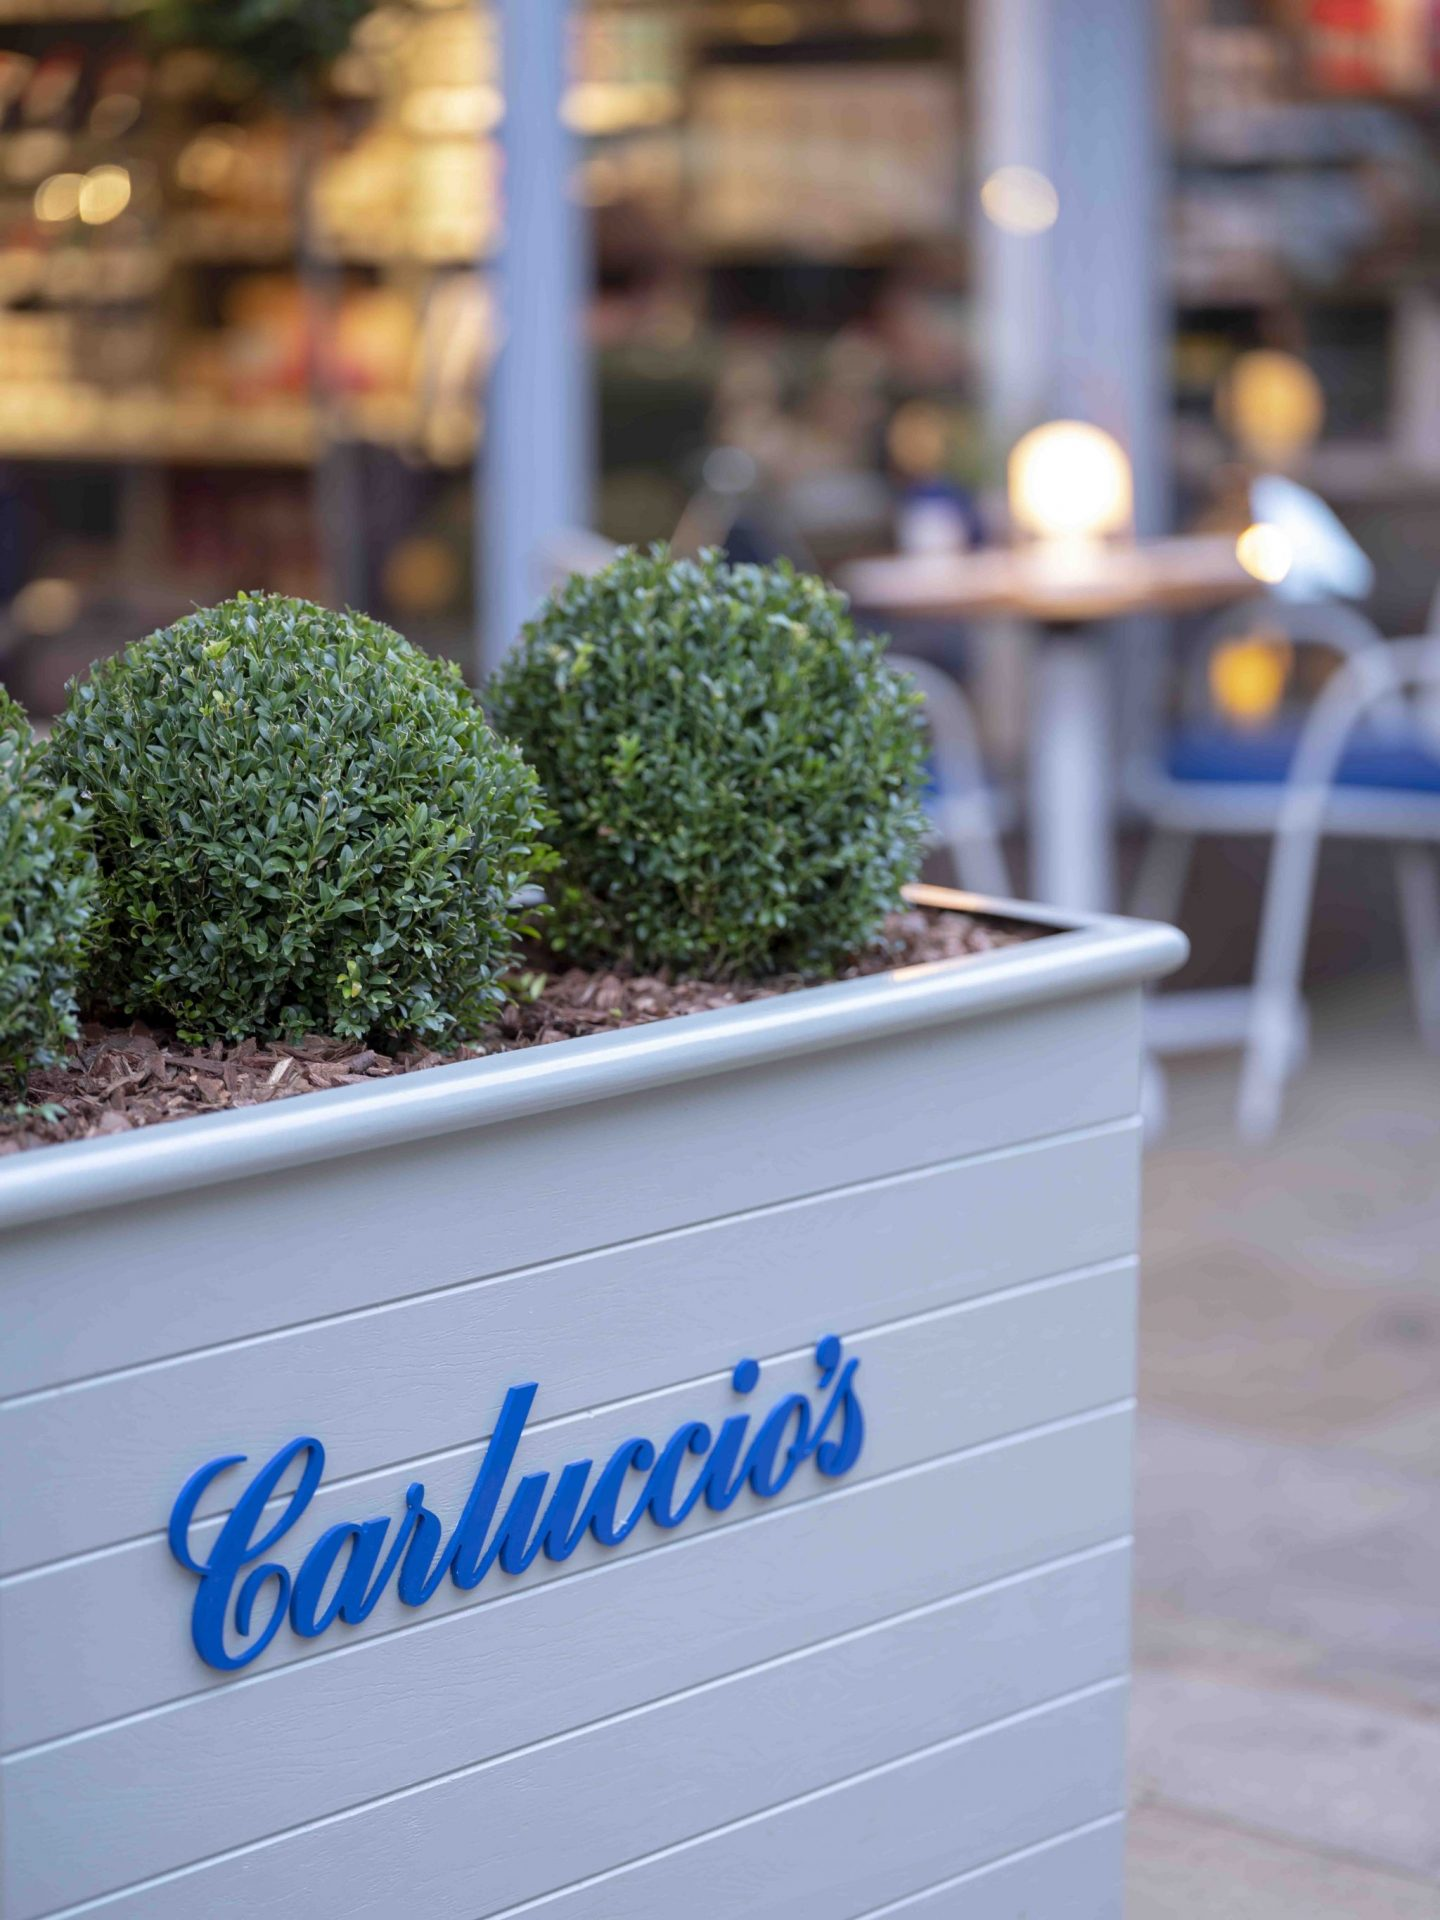 carluccios-chester-food-review-blogger-uk-itallian-restaurant-family-local-chef-famous